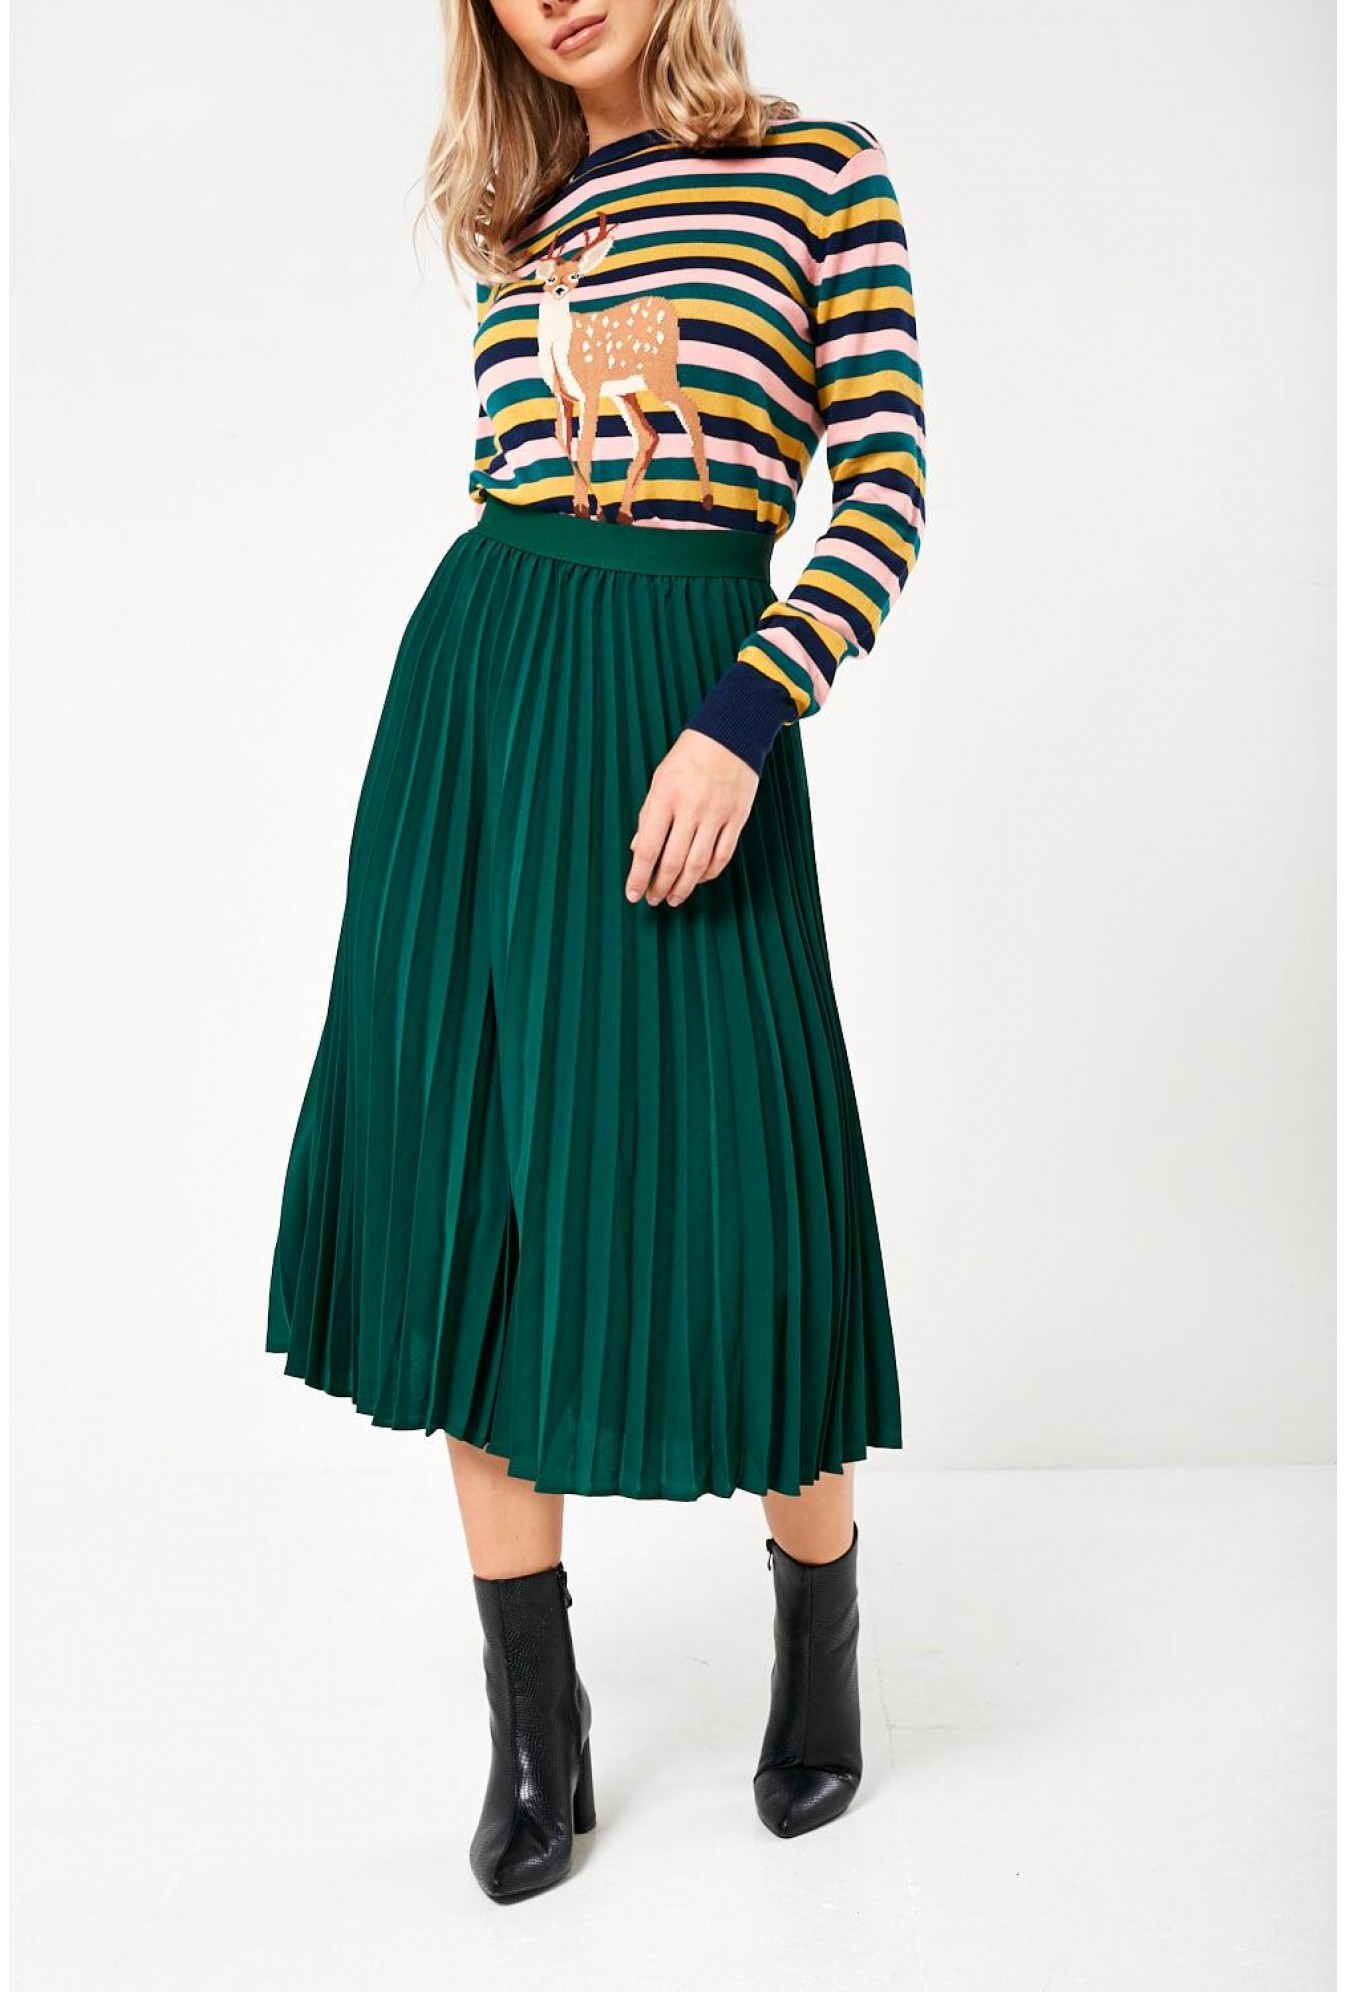 durable service sells fashionable patterns Maria Pleated Skirt in Green